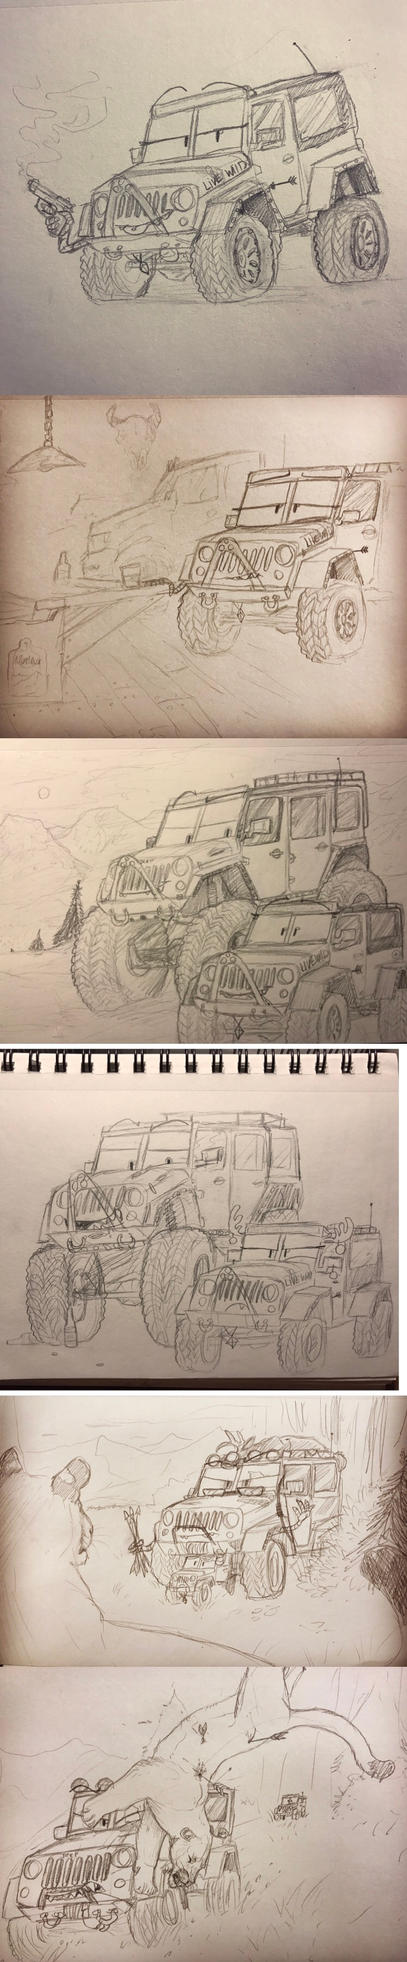 Jeep paper doodles by Minionwolf711